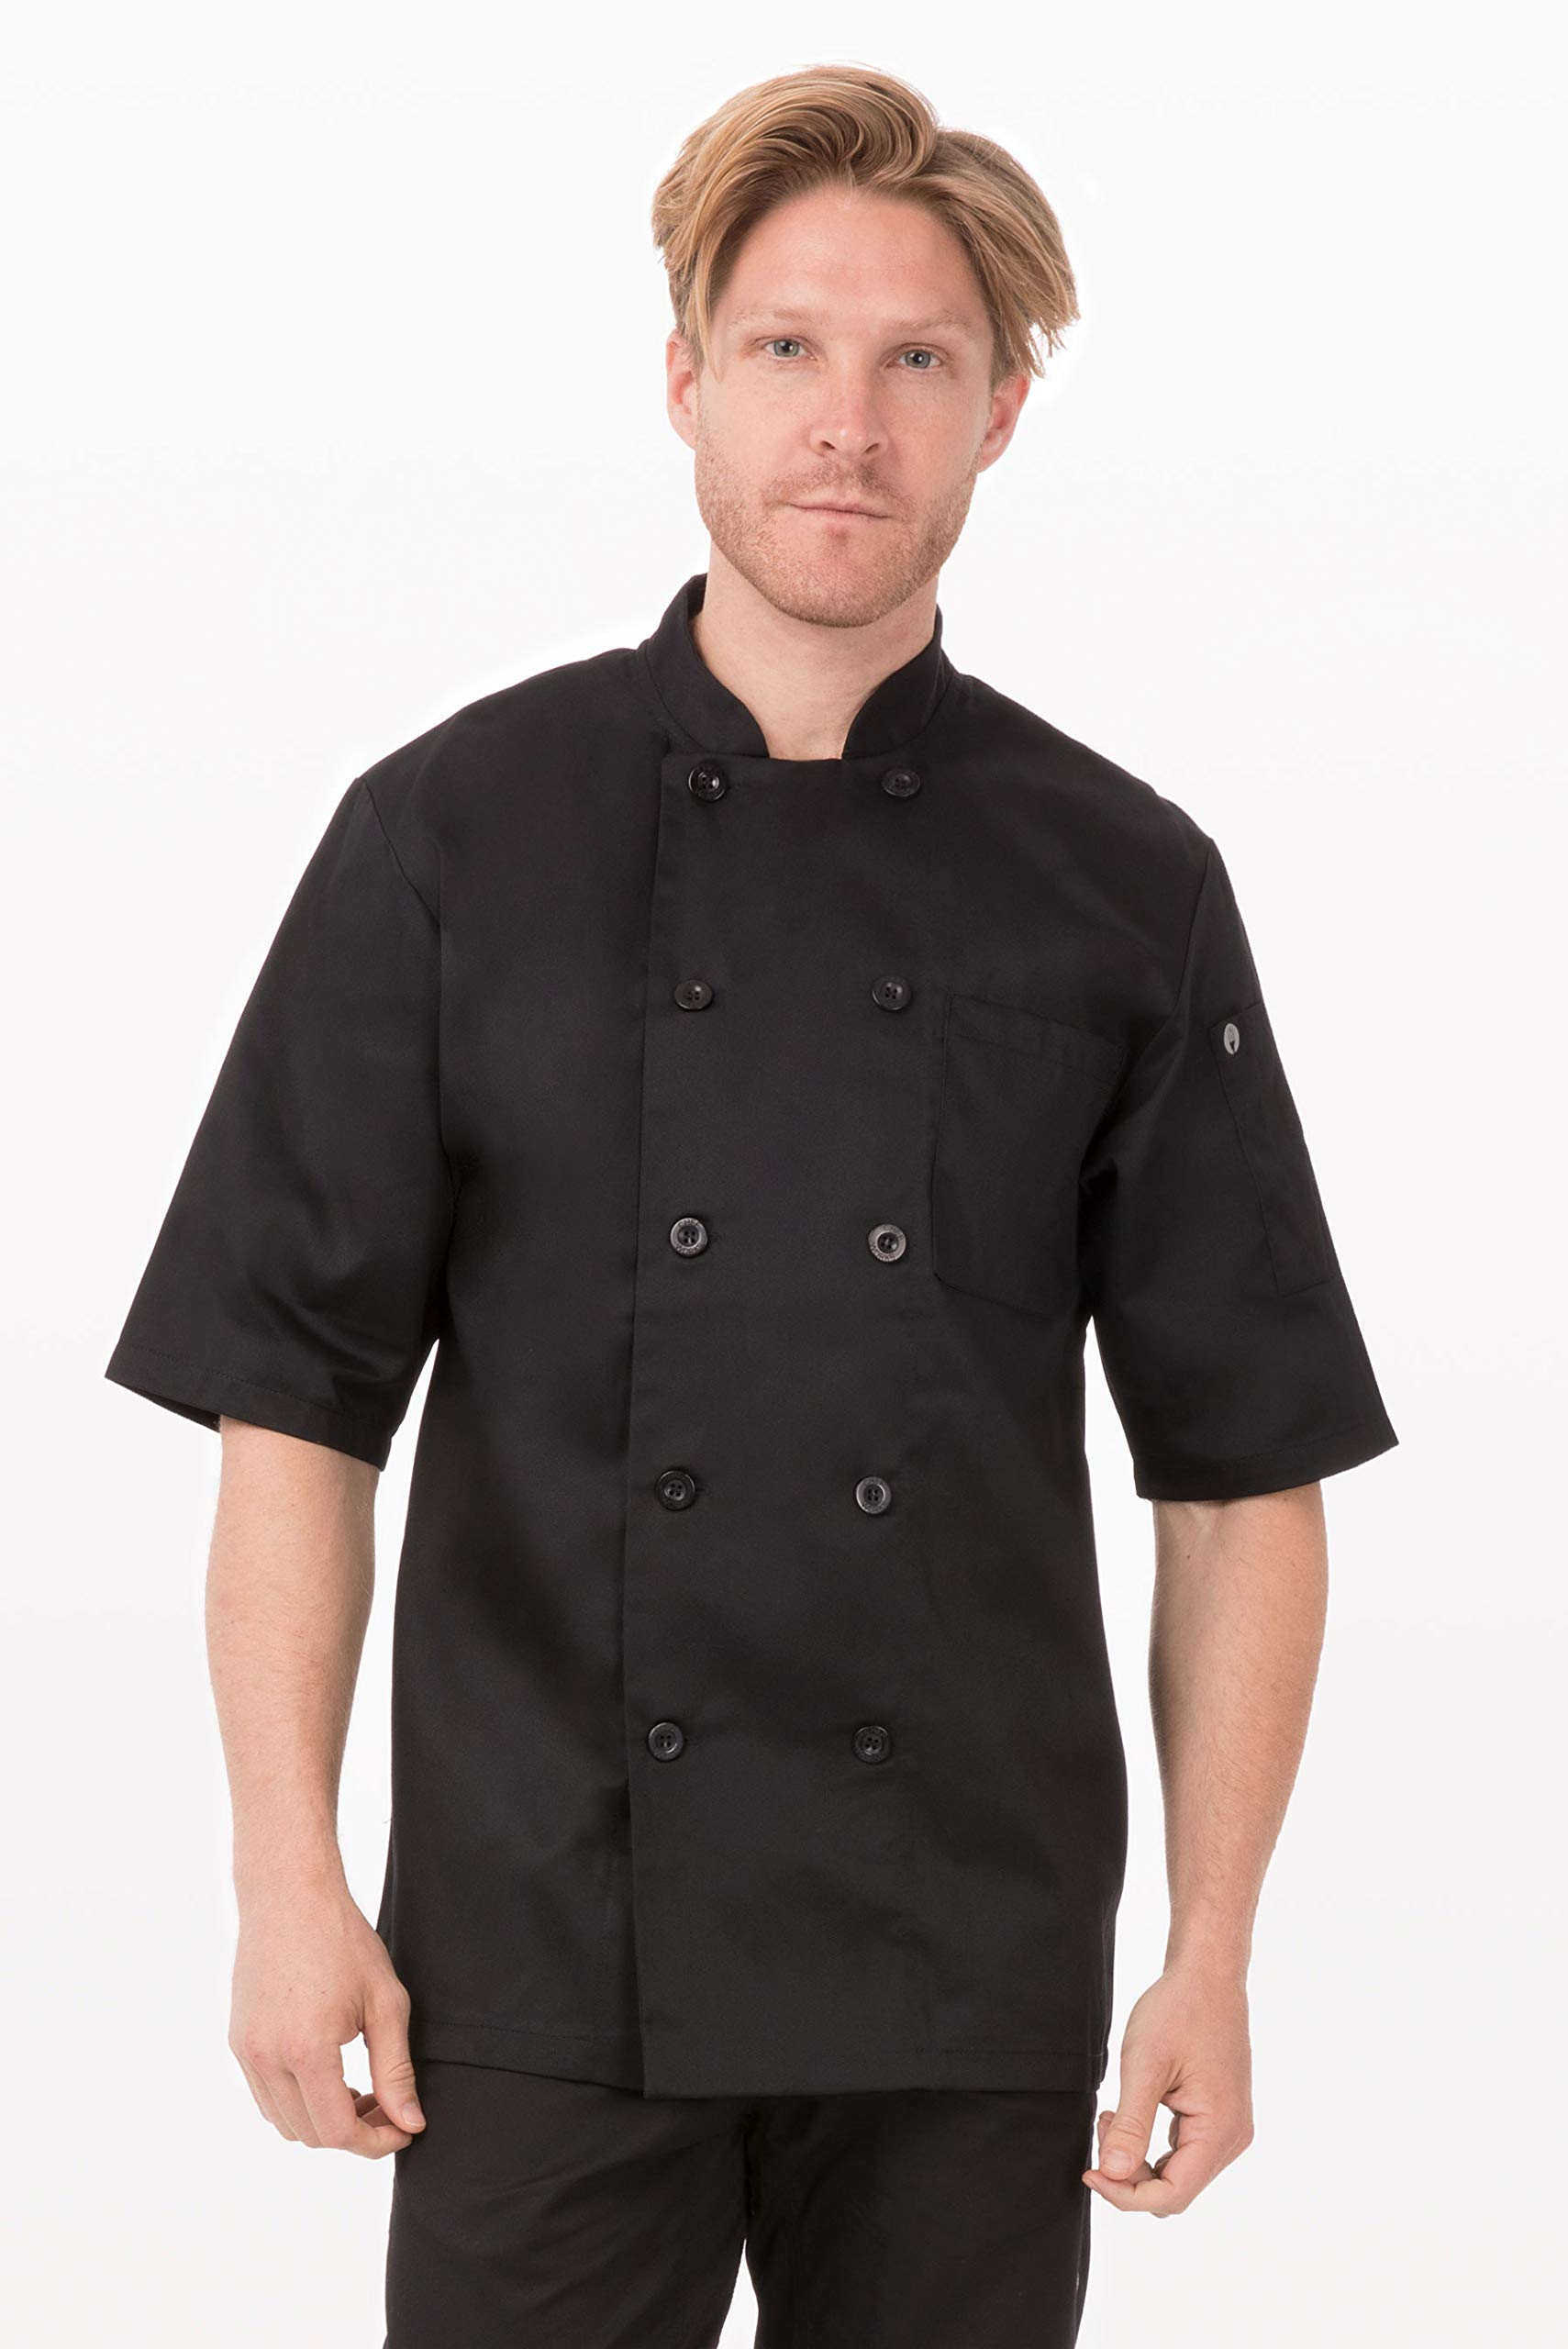 Chef Works Unisex Chambery Chef Coat, Black 3X-Large by Chef Works